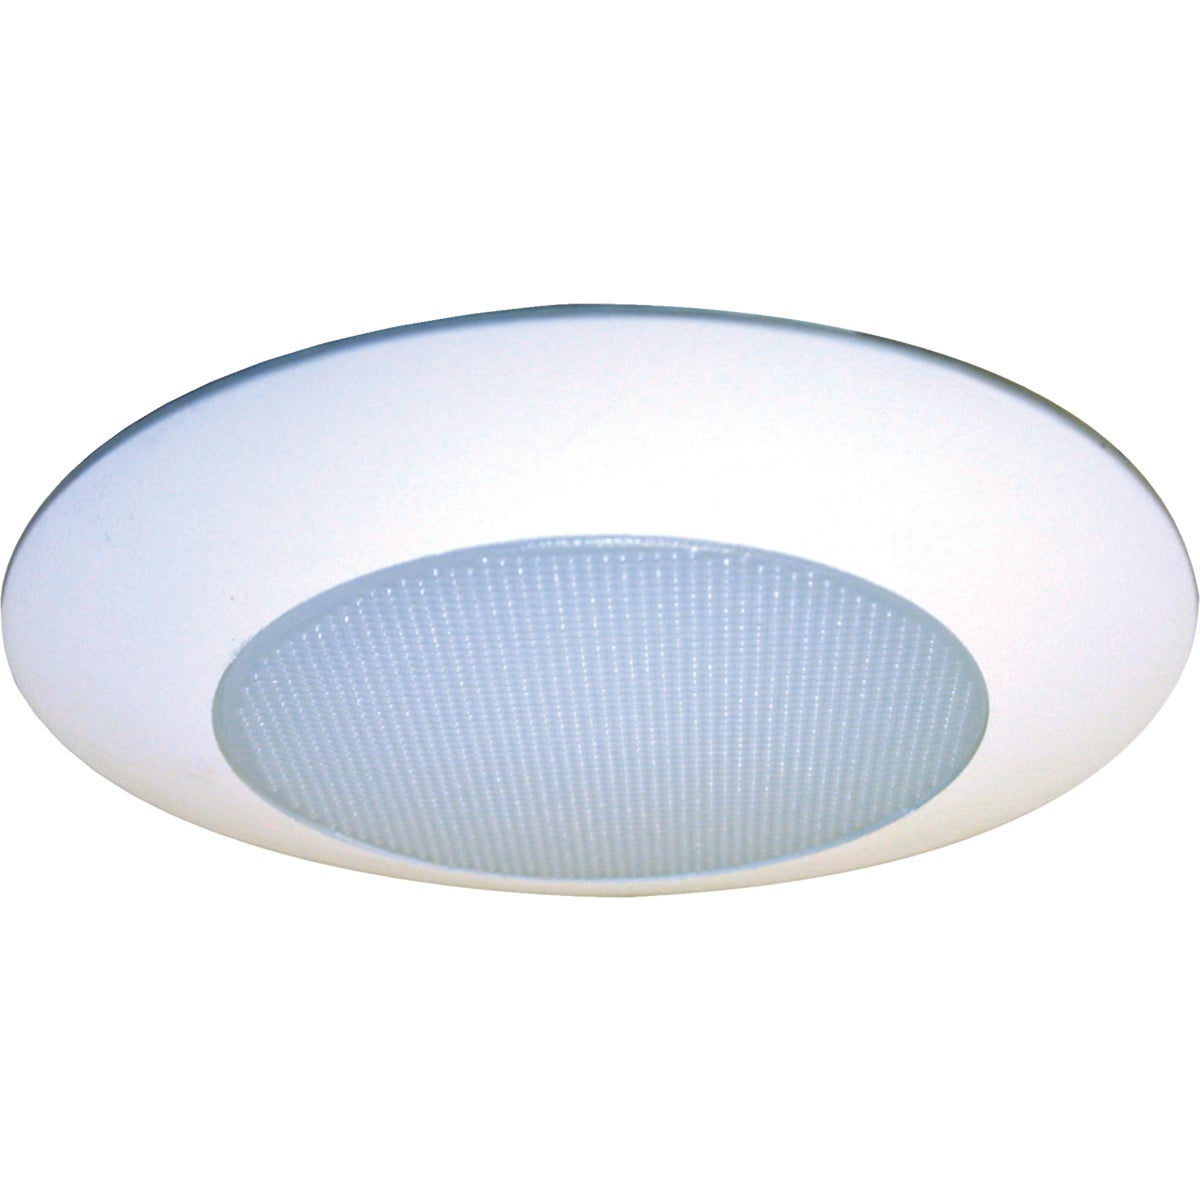 "6"" SHOWER LIGHT - 170PS by Cooper Lighting"